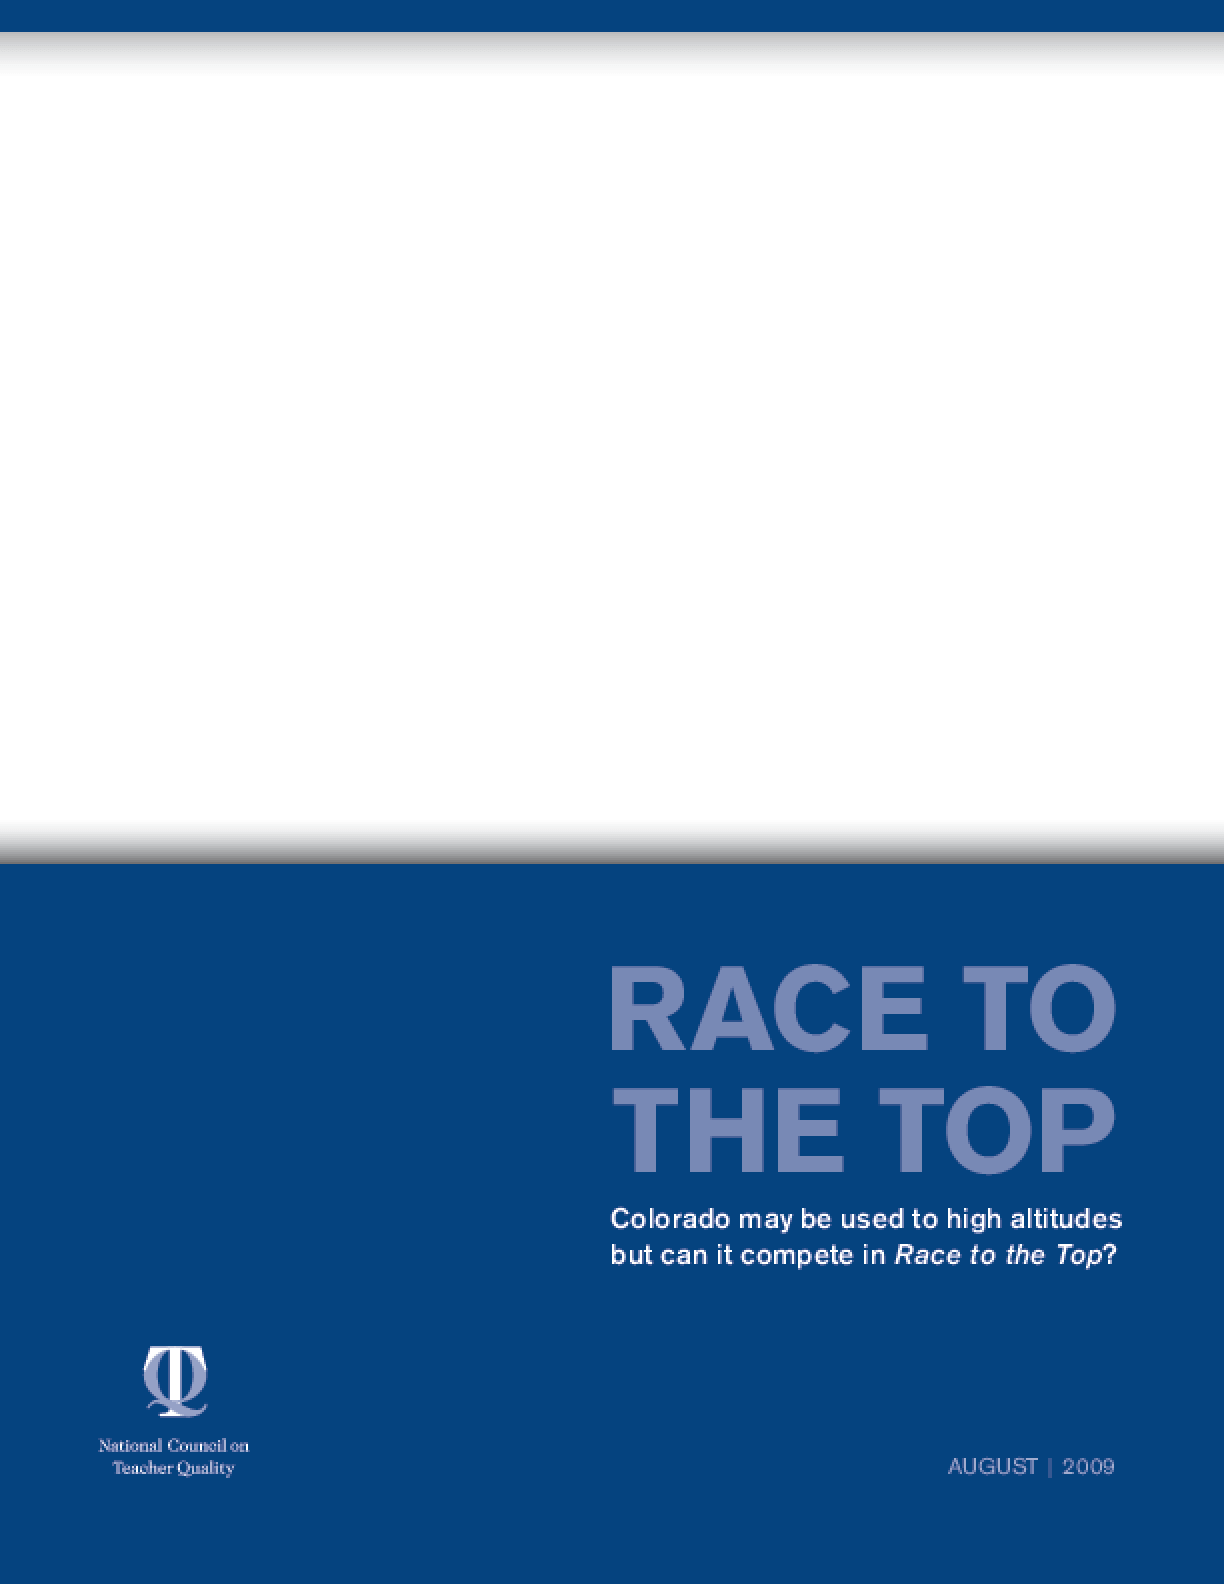 Race to the Top: Colorado May Be Used to High Altitudes But Can It Compete in Race to the Top?